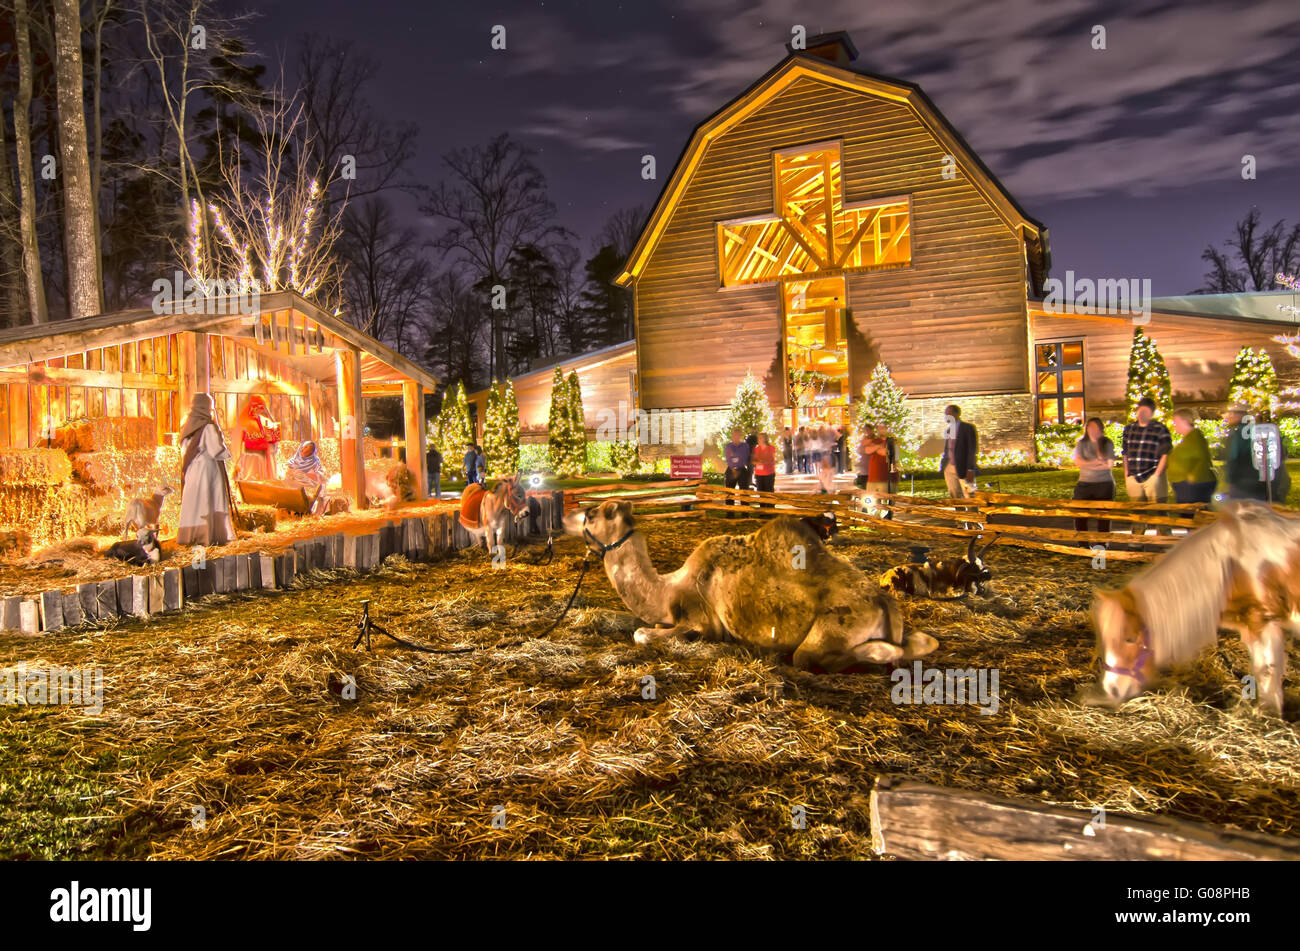 21st december 2013 charlotte nc christmas celebration at billy graham library stock